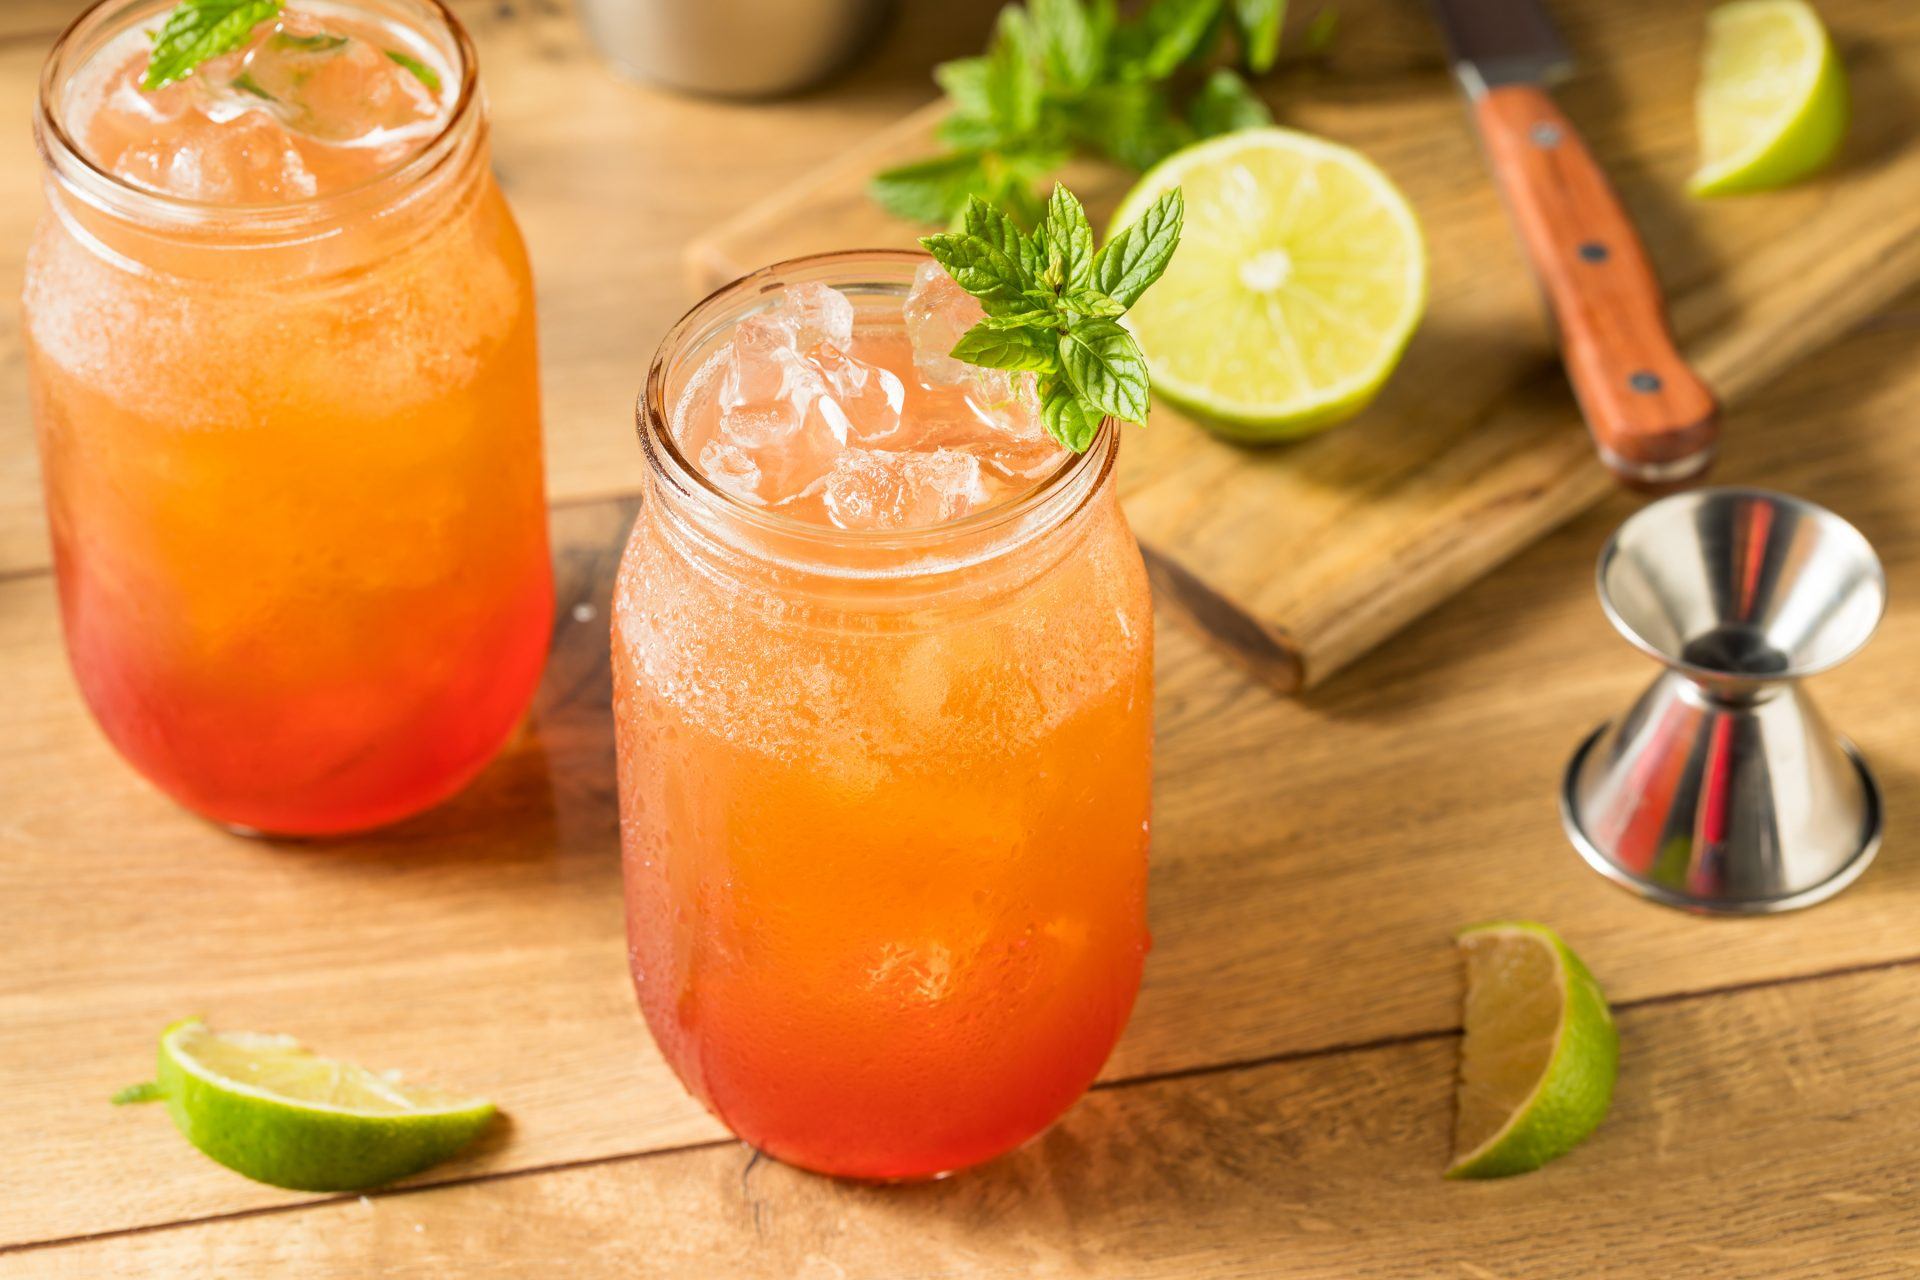 SMOOTH & SWEET, PLANTER'S PUNCH IS THE DRINK OF THE WEEK FROM CRYSTAL CRUISES